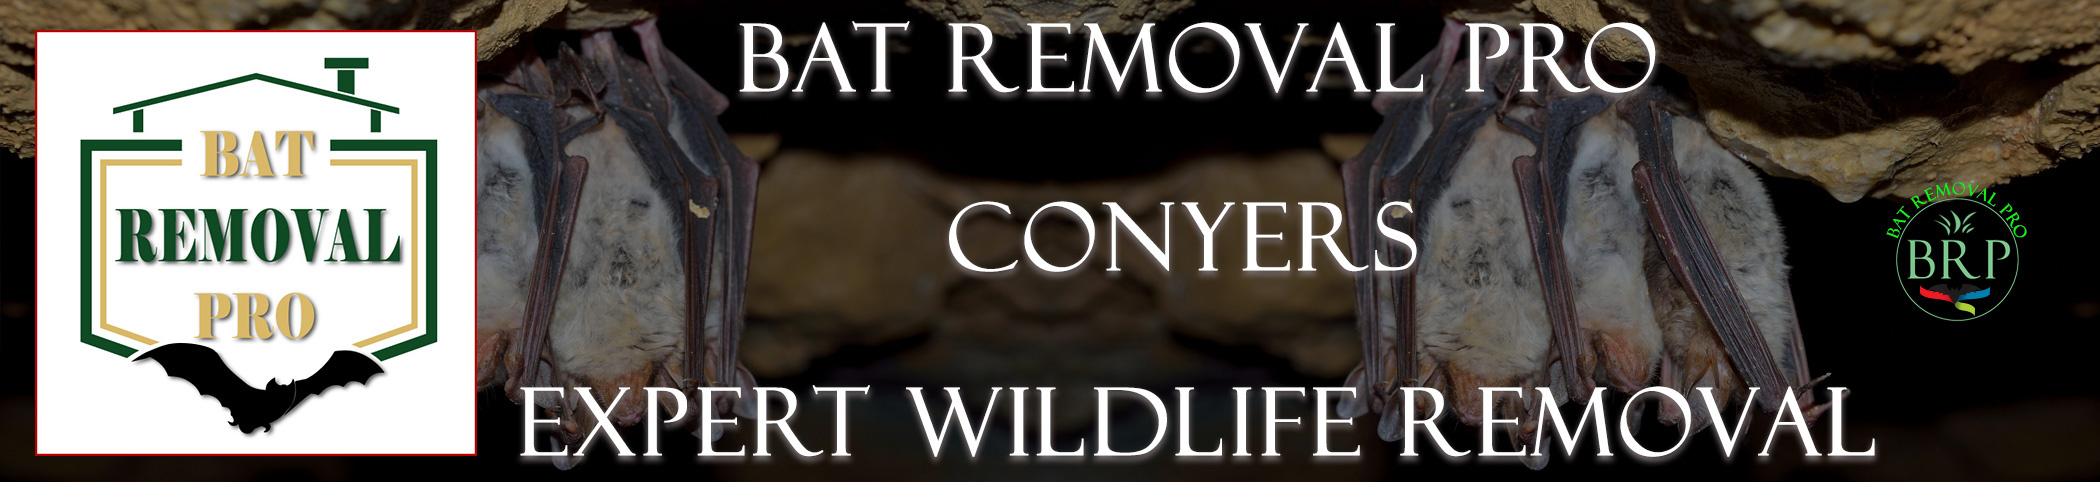 Conyers-bat-removal-at-bat-removal-pro-header-image